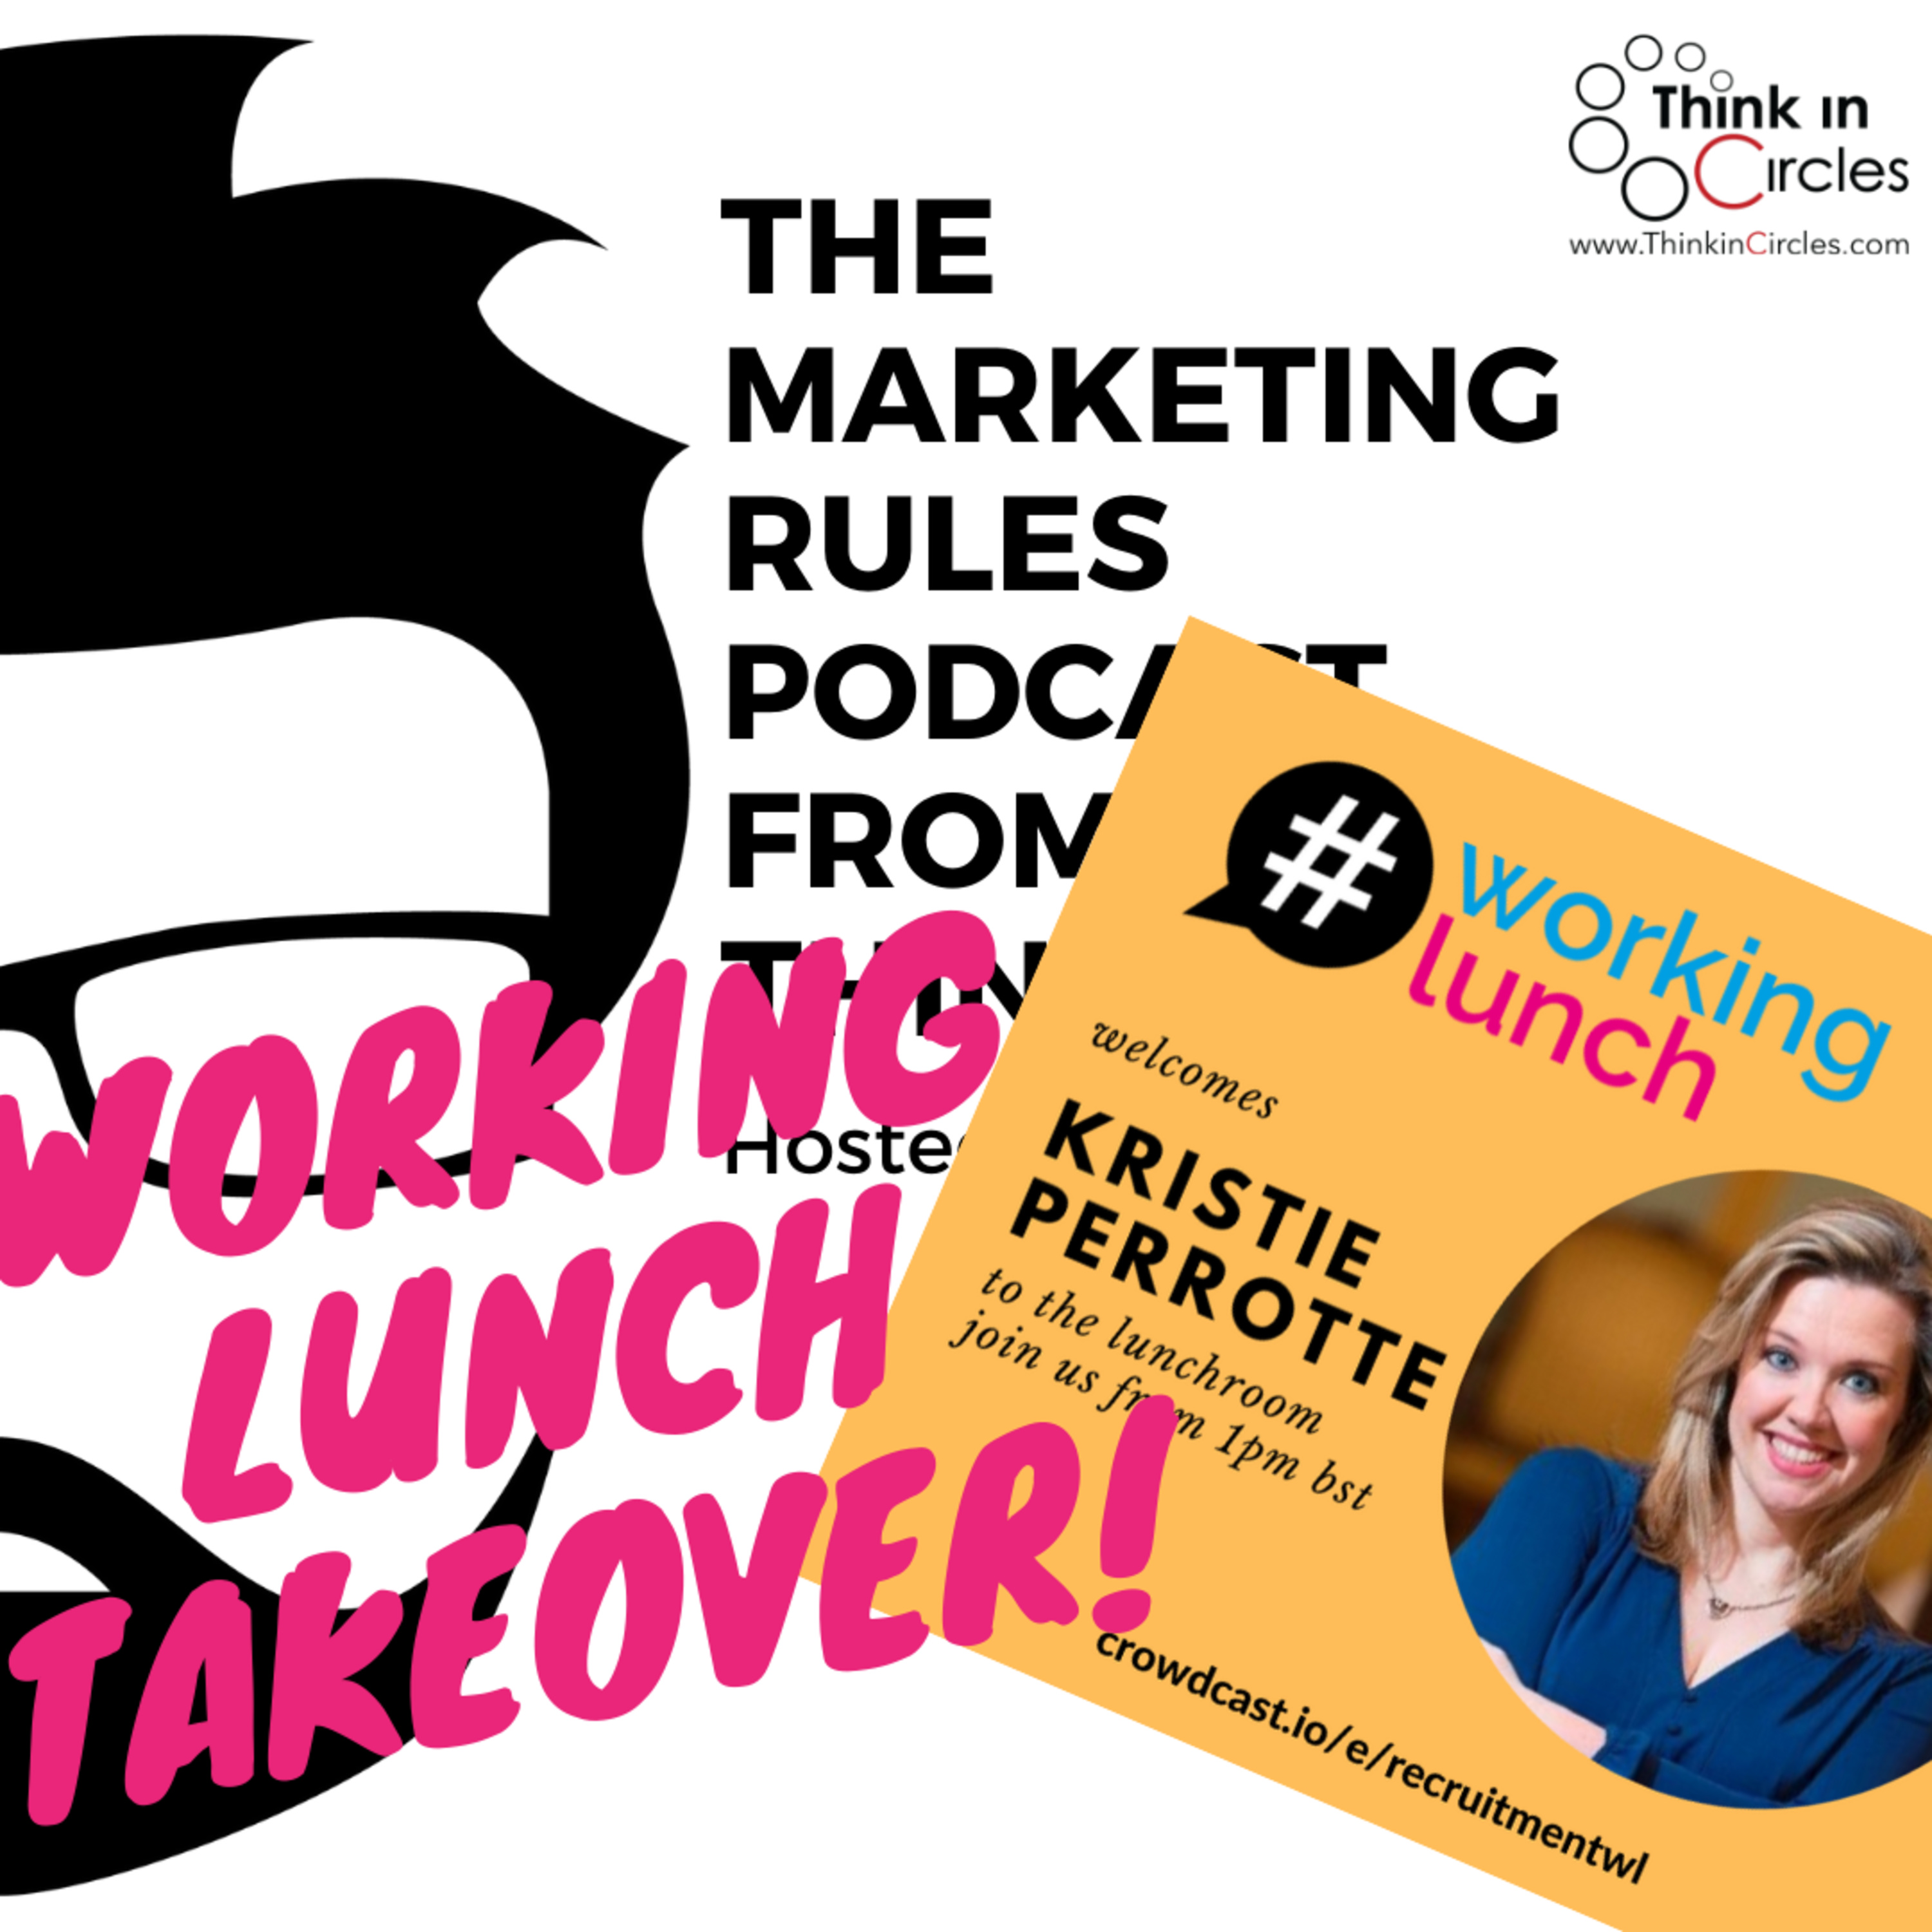 Working Lunch takeover with Kristie Perrotte